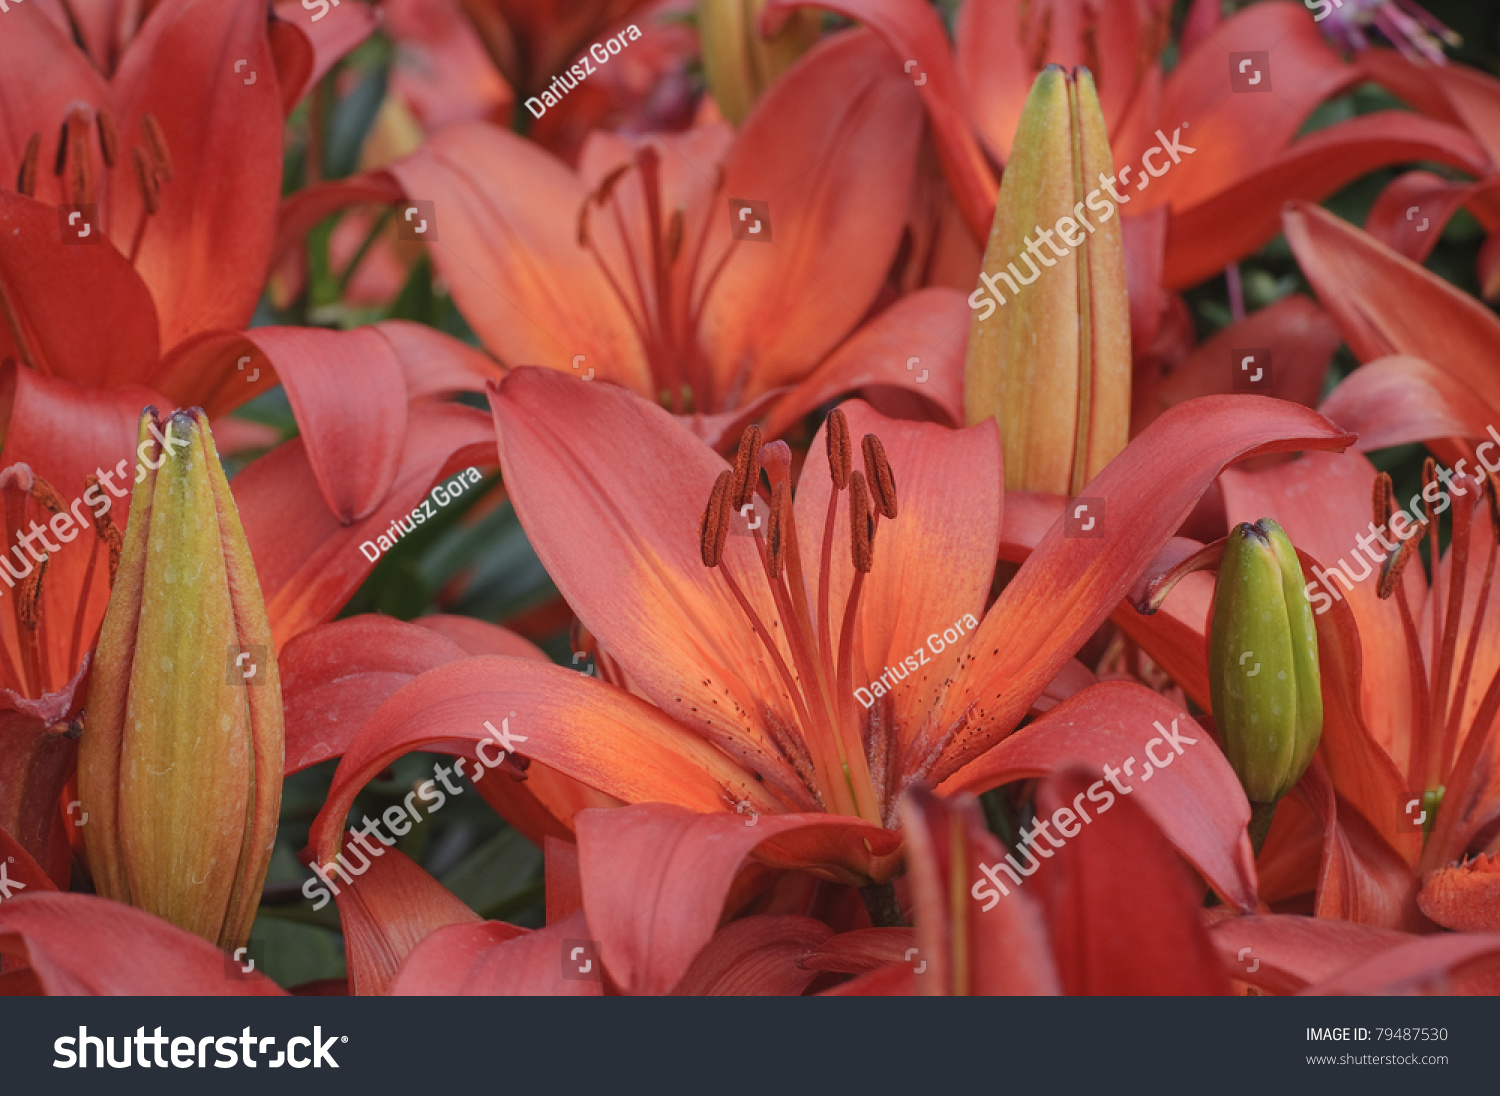 The red lily flowers and buds ez canvas id 79487530 izmirmasajfo